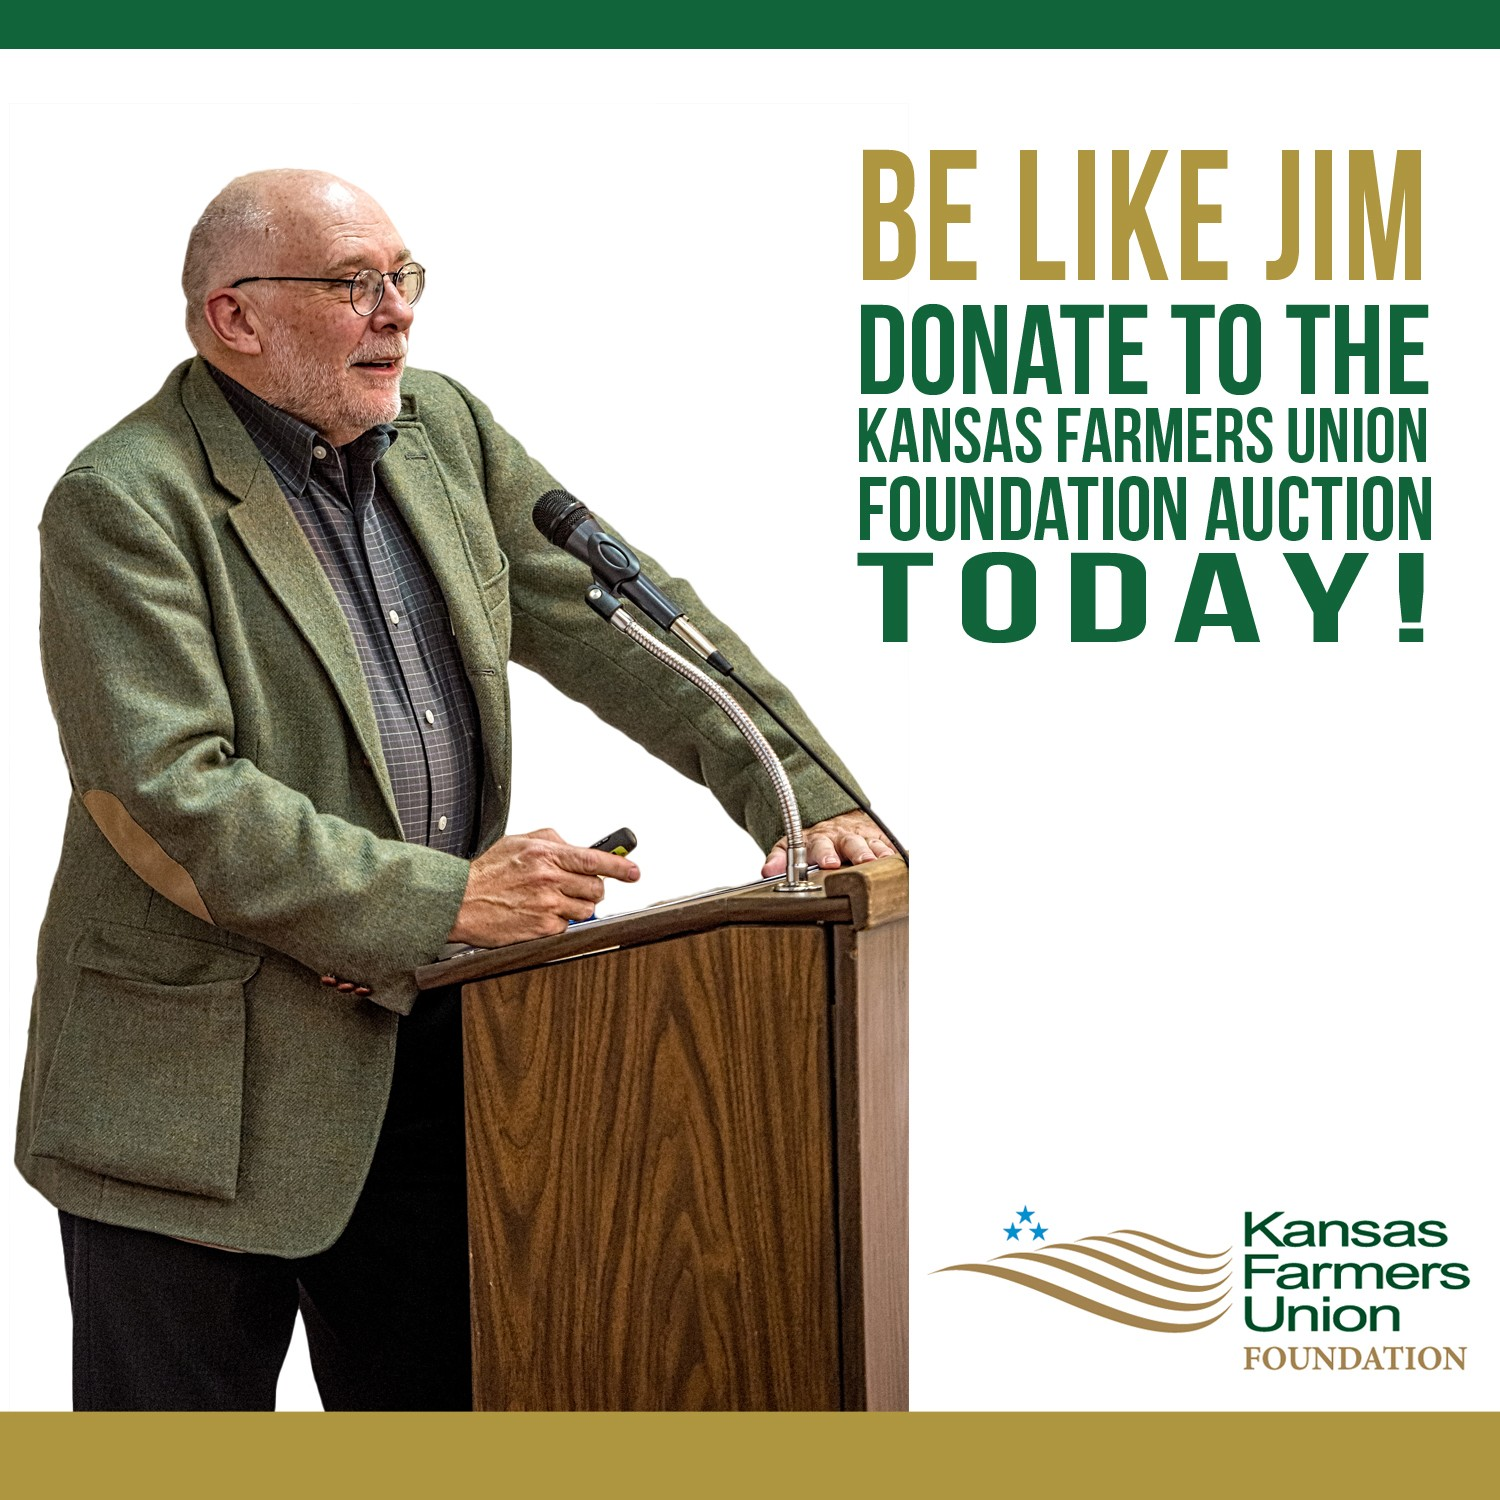 Be like Jim 2015 KFUF Auction Promo